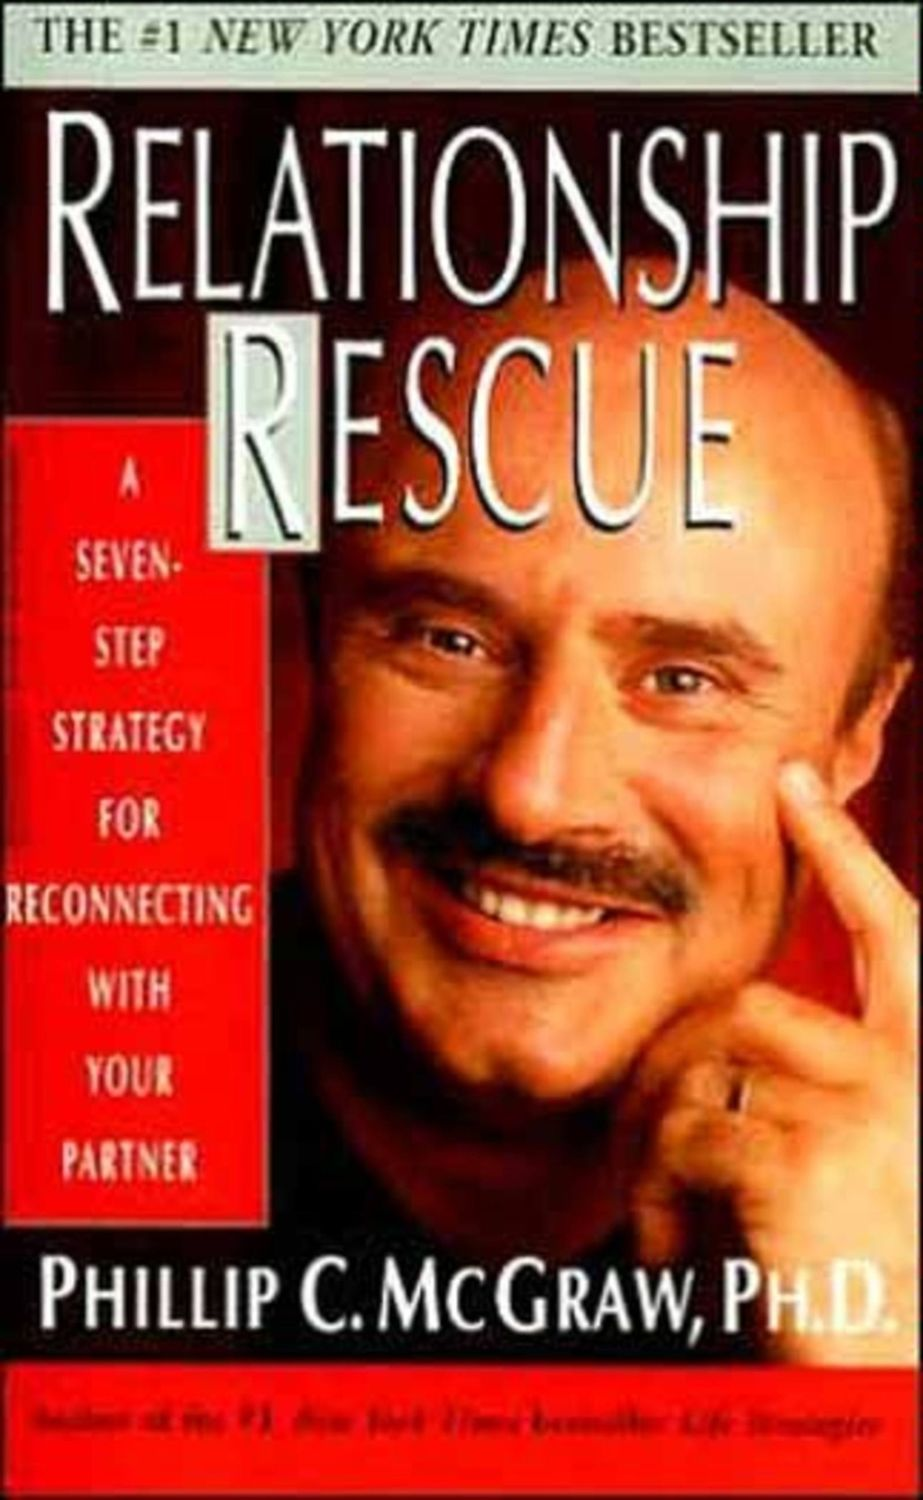 Workbooks relationship rescue workbook : 15 Books You Should Read To Become A Better Person In 2017   Playbuzz